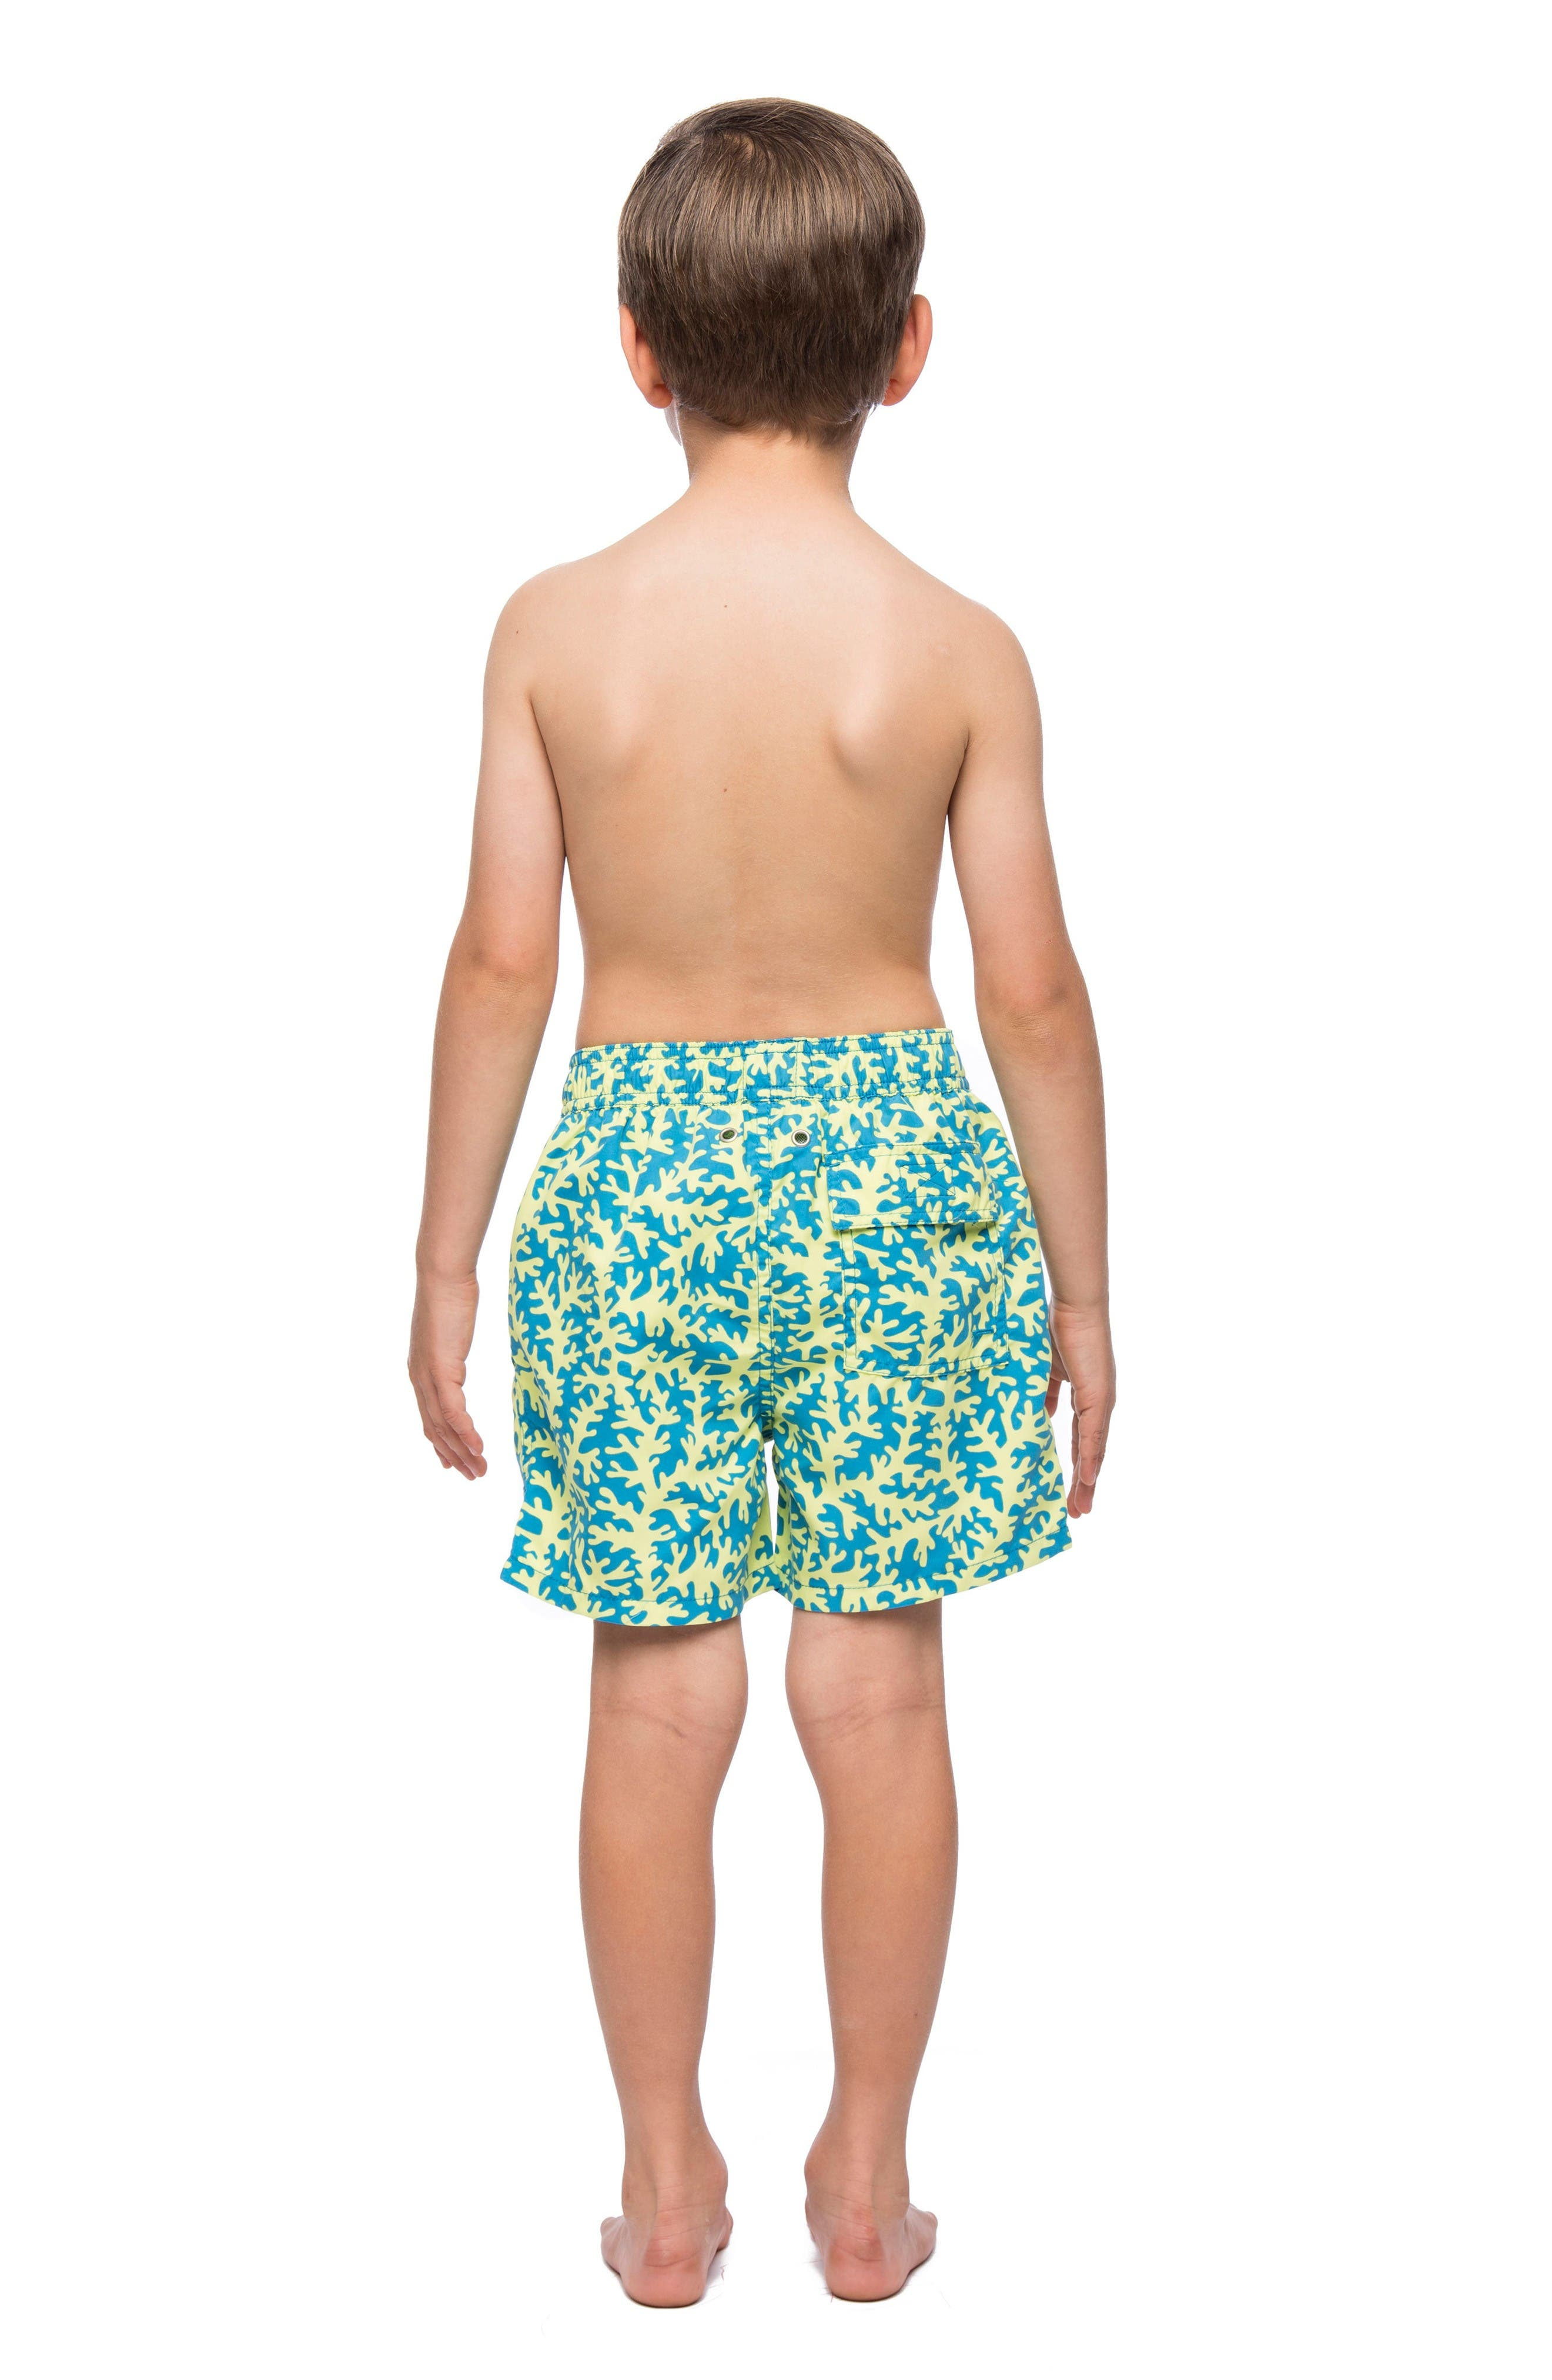 Coral Swim Trunks,                             Alternate thumbnail 3, color,                             Blue/ Lime